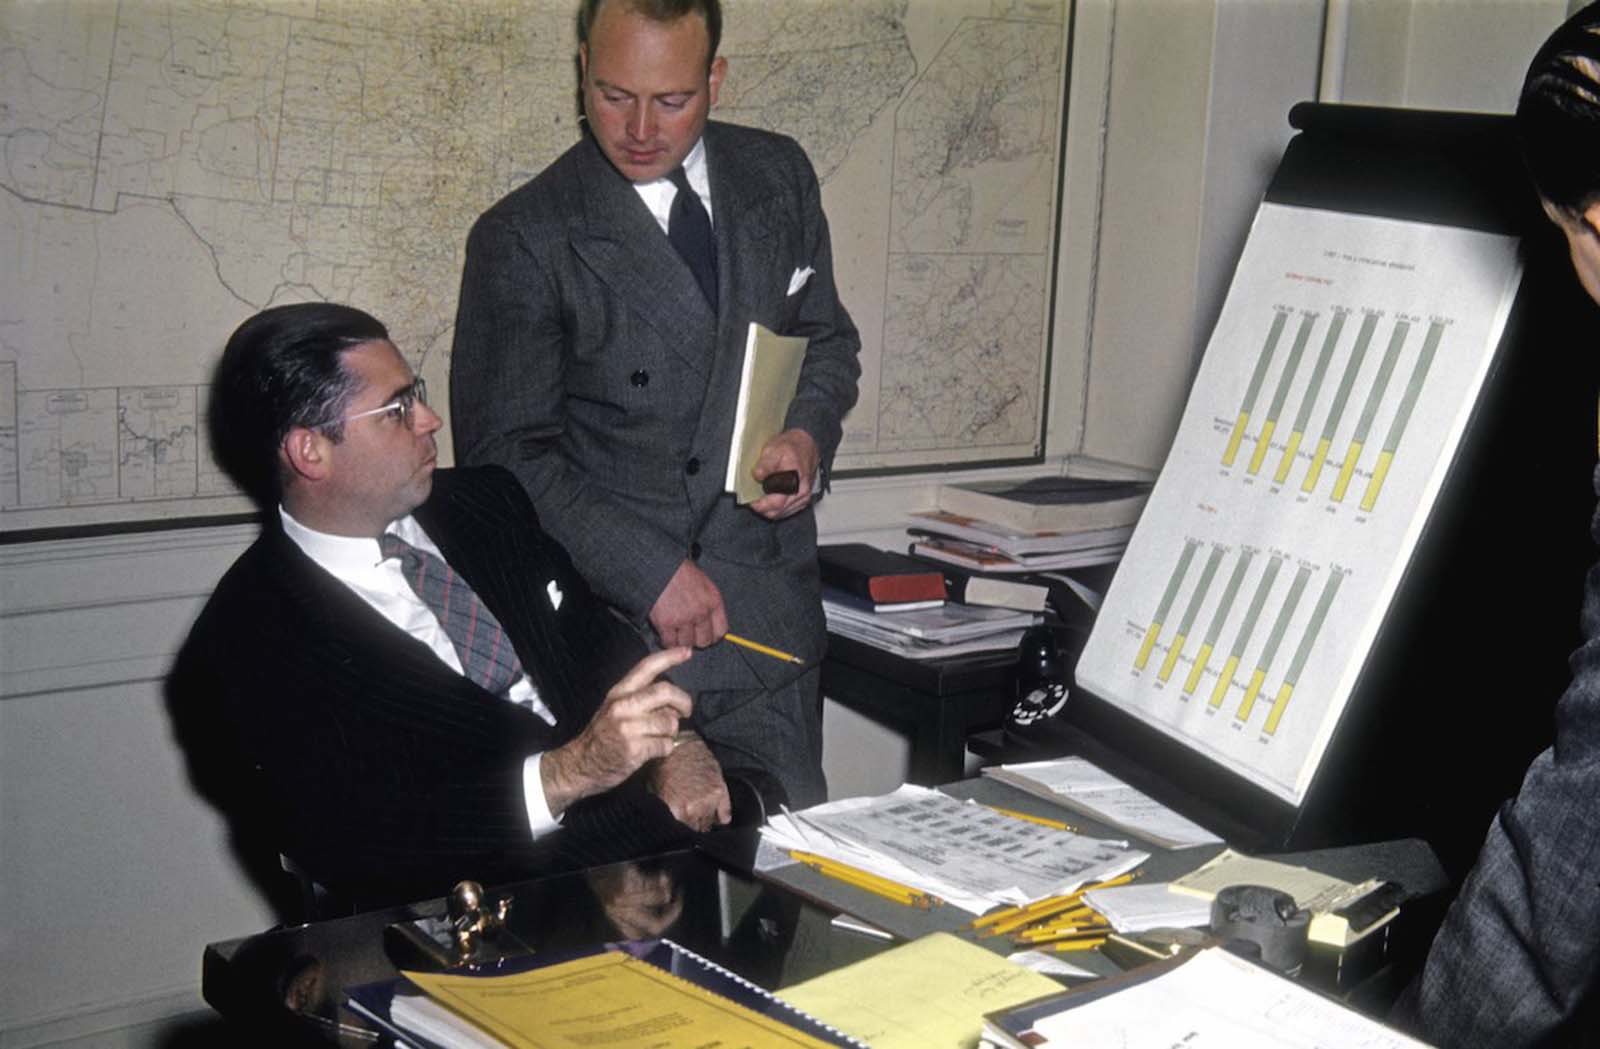 A plethora of yellow pencils litters this man's desk as he investigates detailed statistics relating to a client campaign.